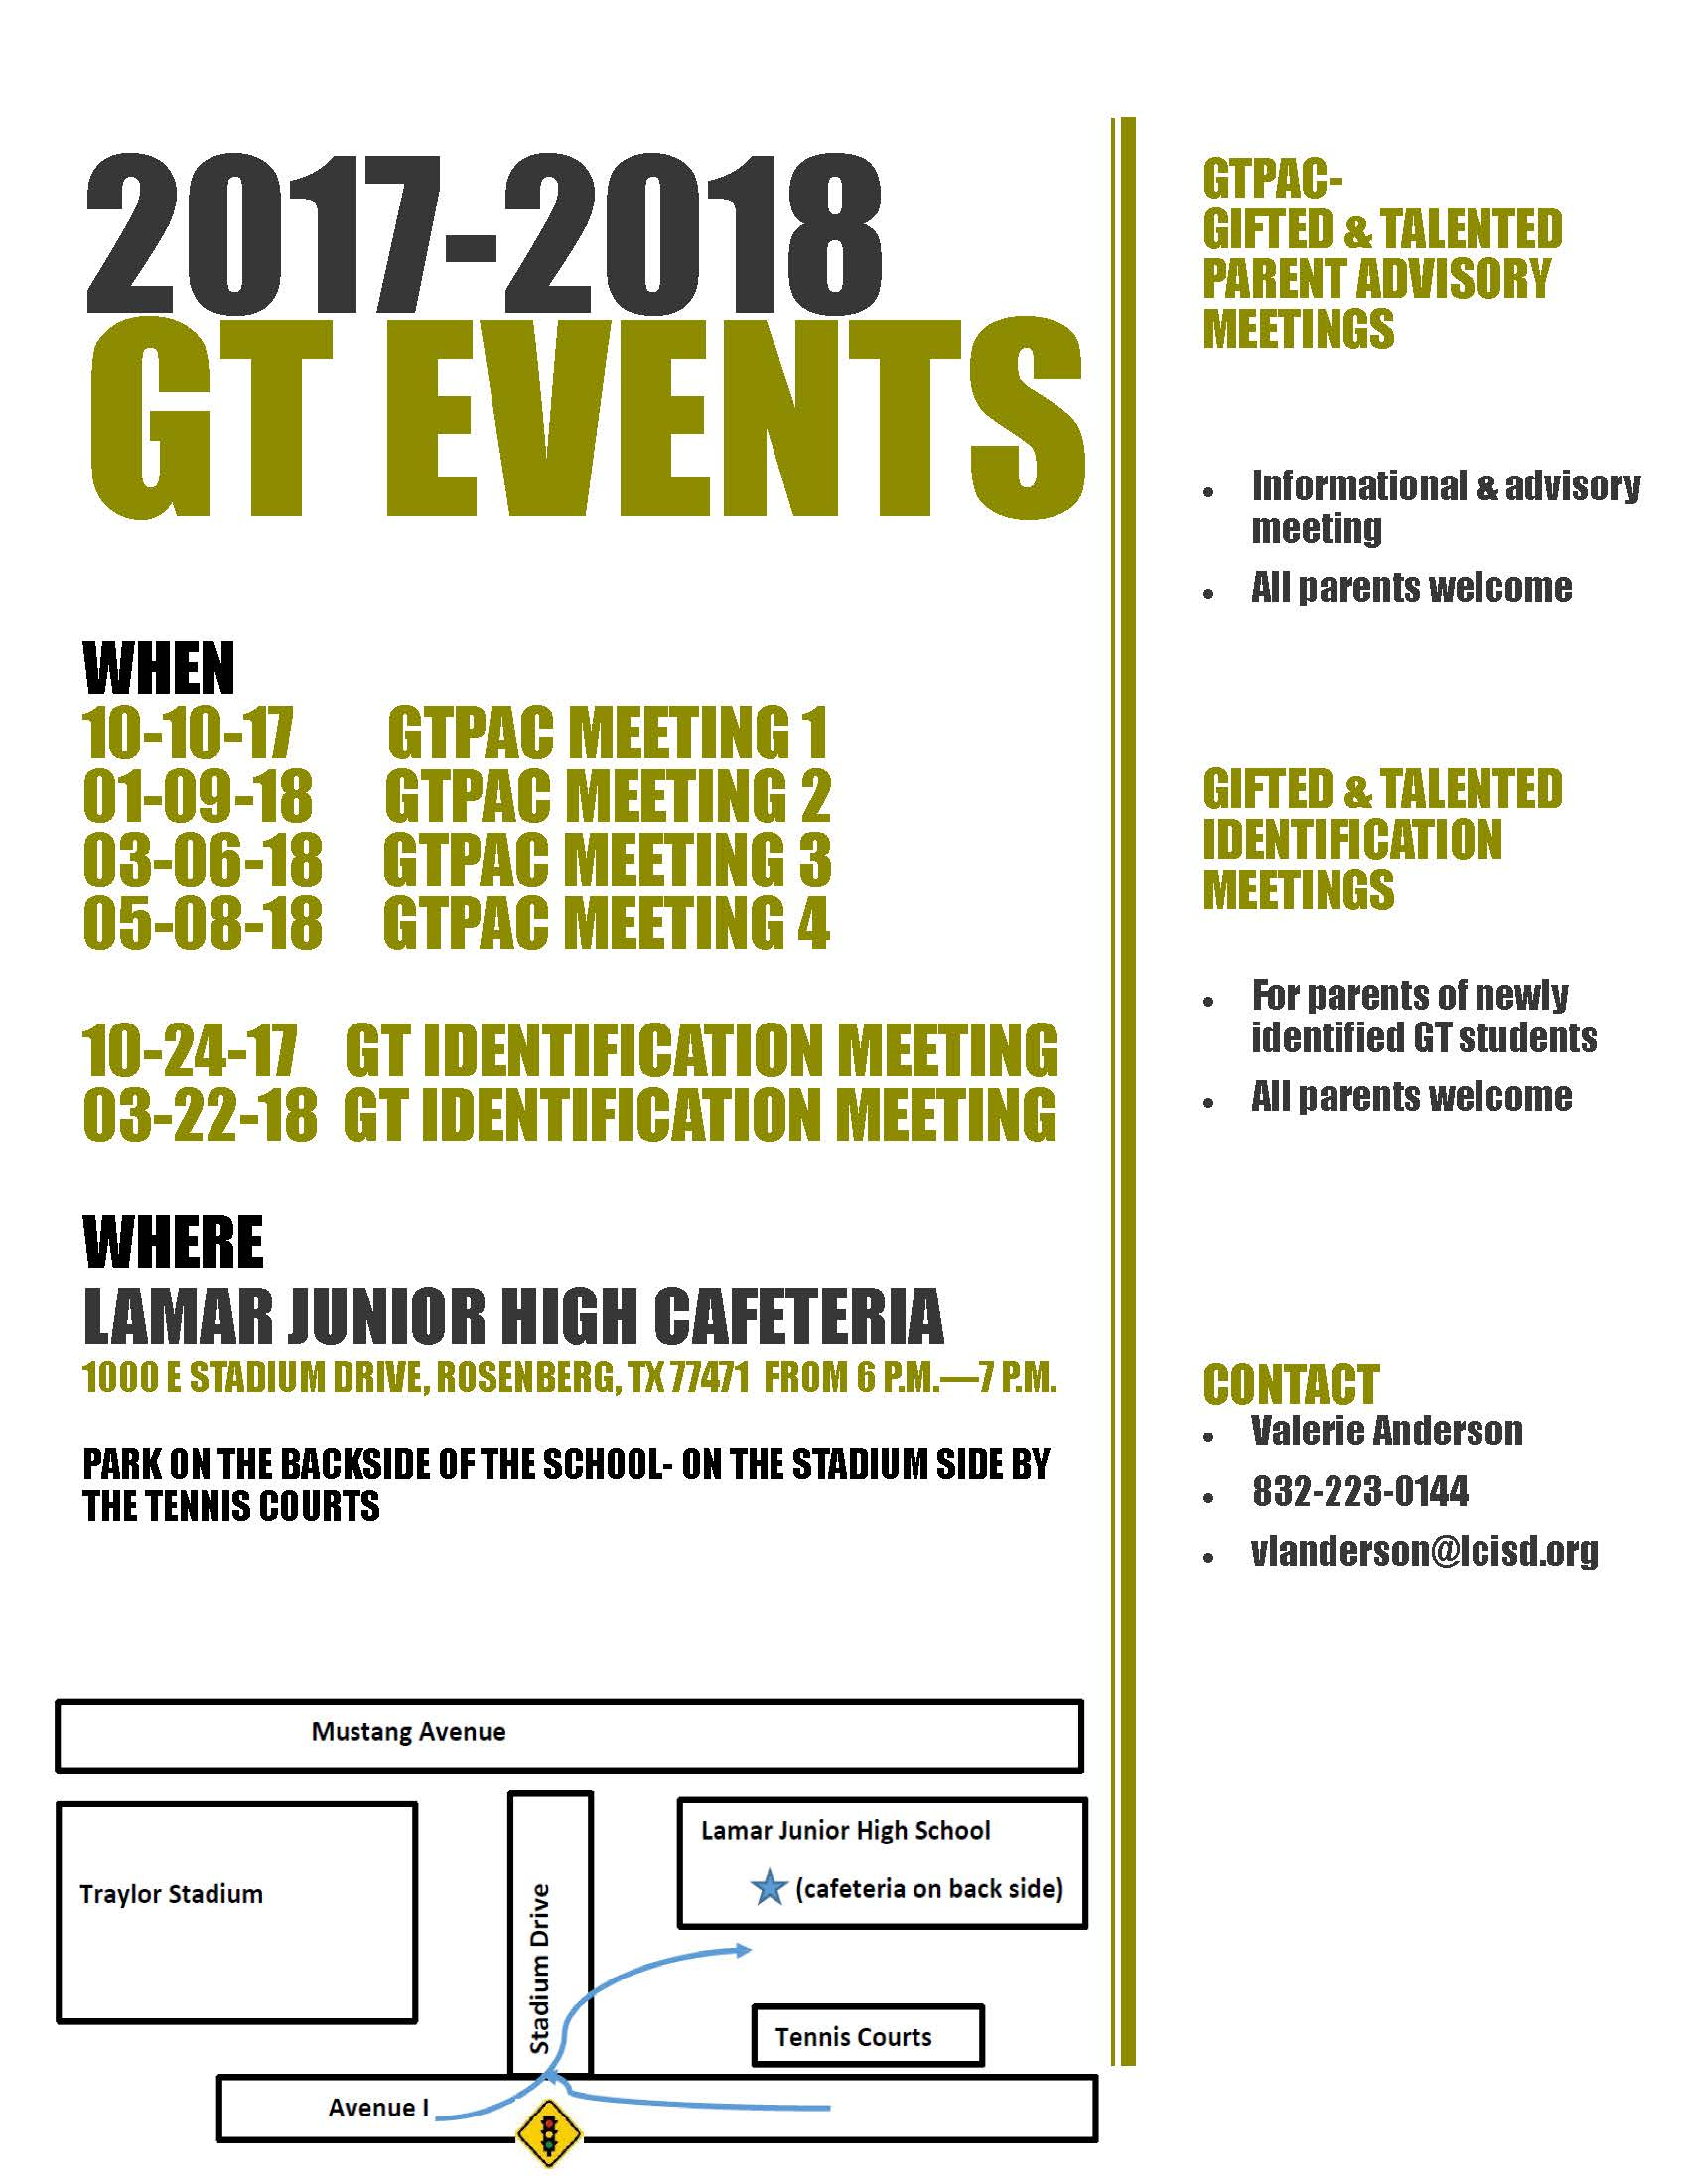 GT Event Flyer 2017-2018